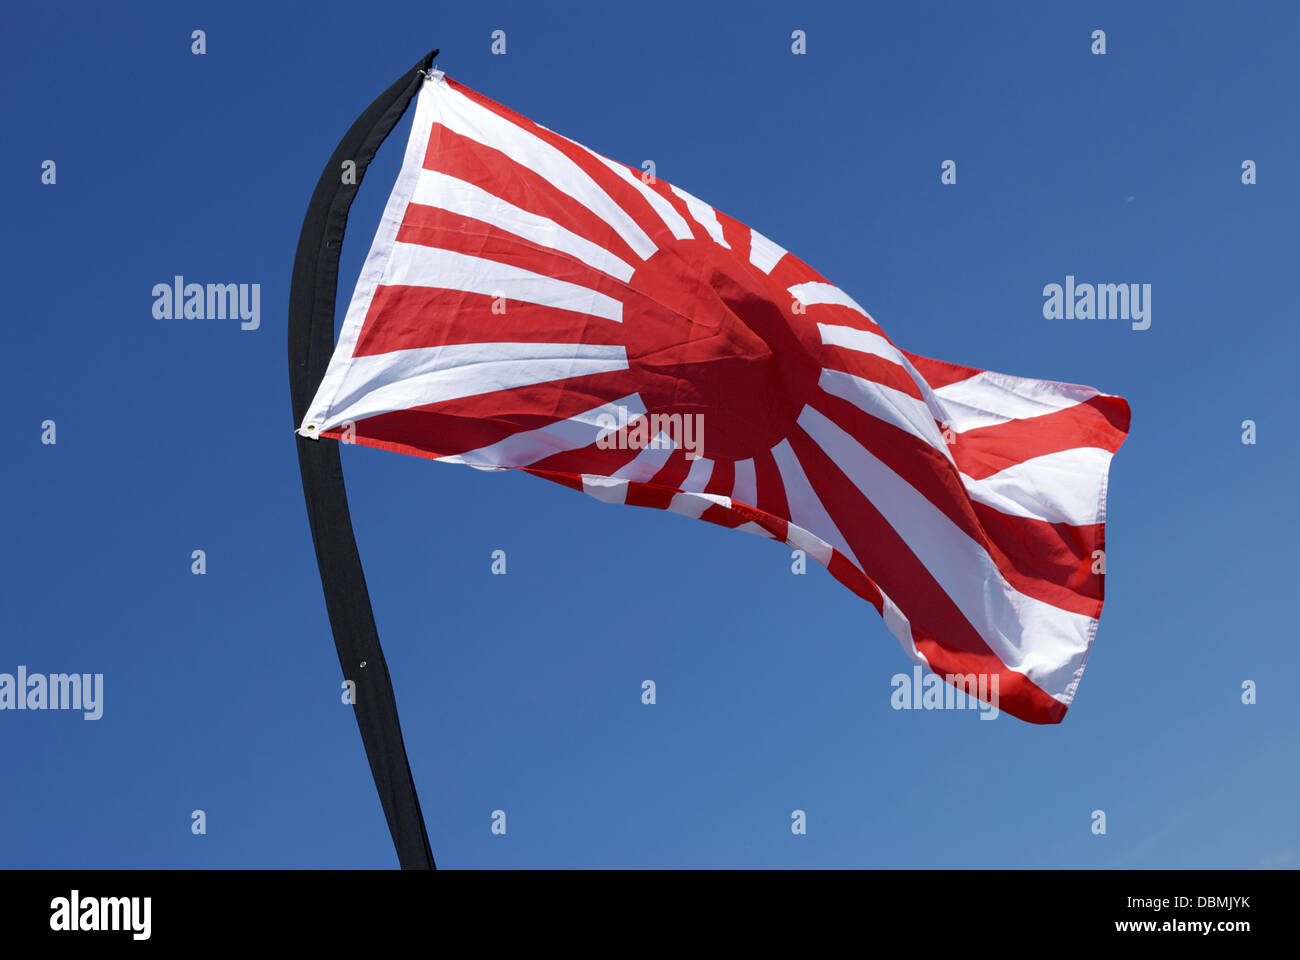 Rising sun flag wavering and fluttering movement on blue sky on windy day - Stock Image